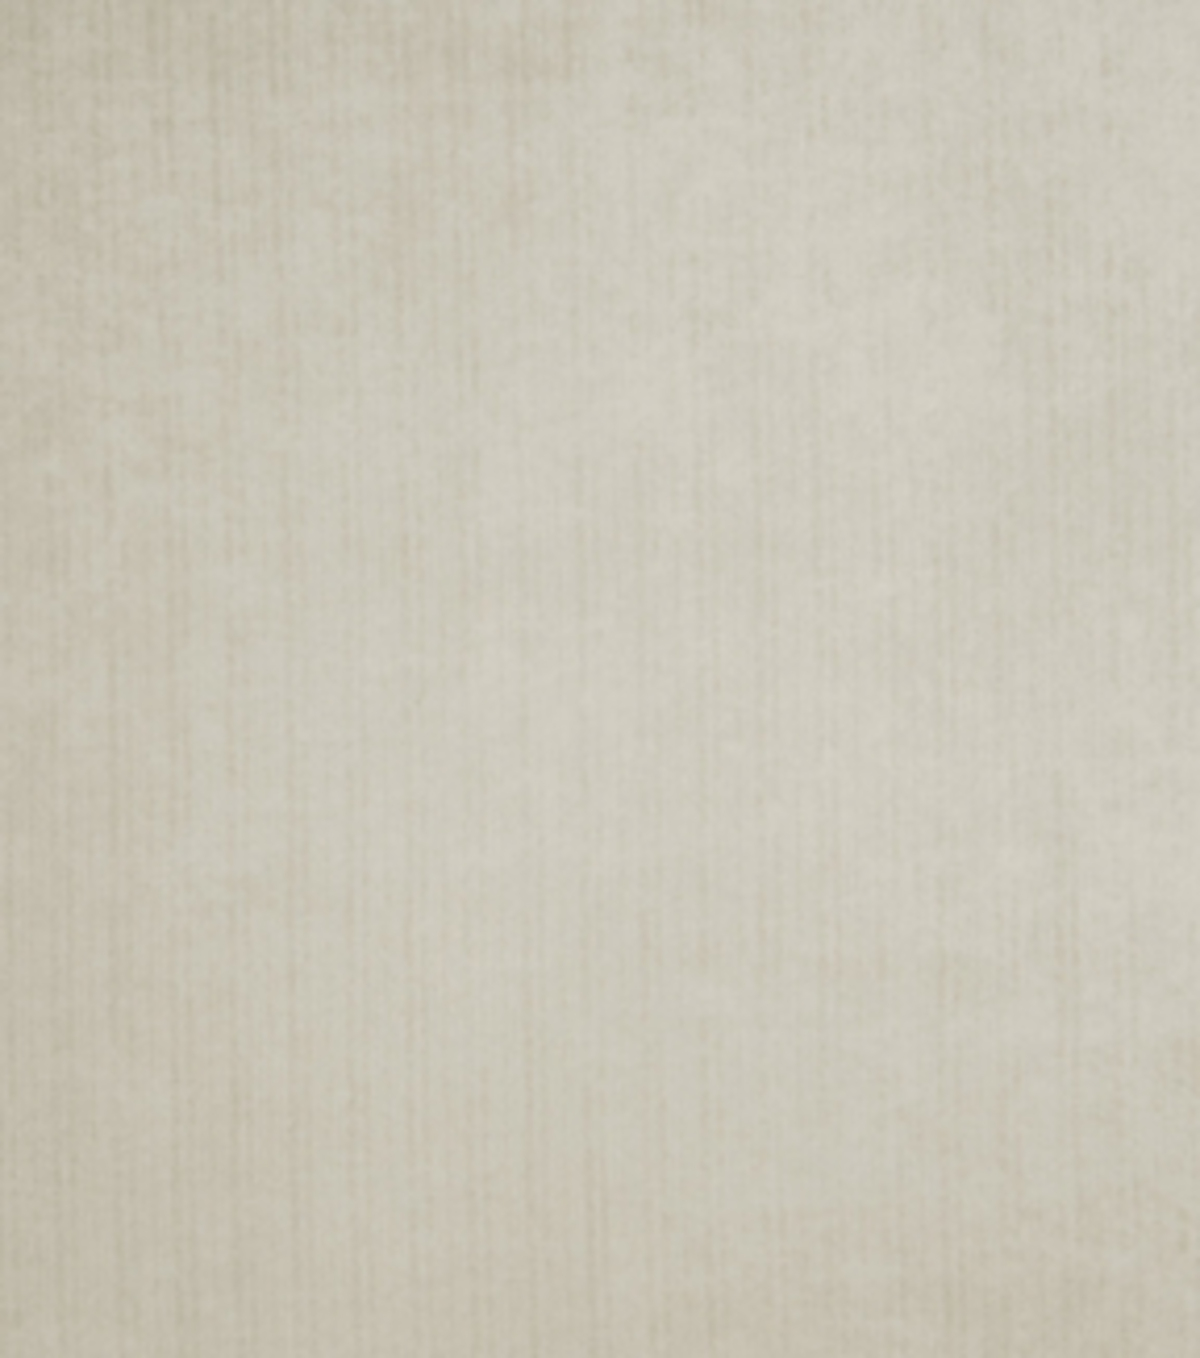 Home Decor 8\u0022x8\u0022 Fabric Swatch-Eaton Square Outdoor-Velvet Light Grey